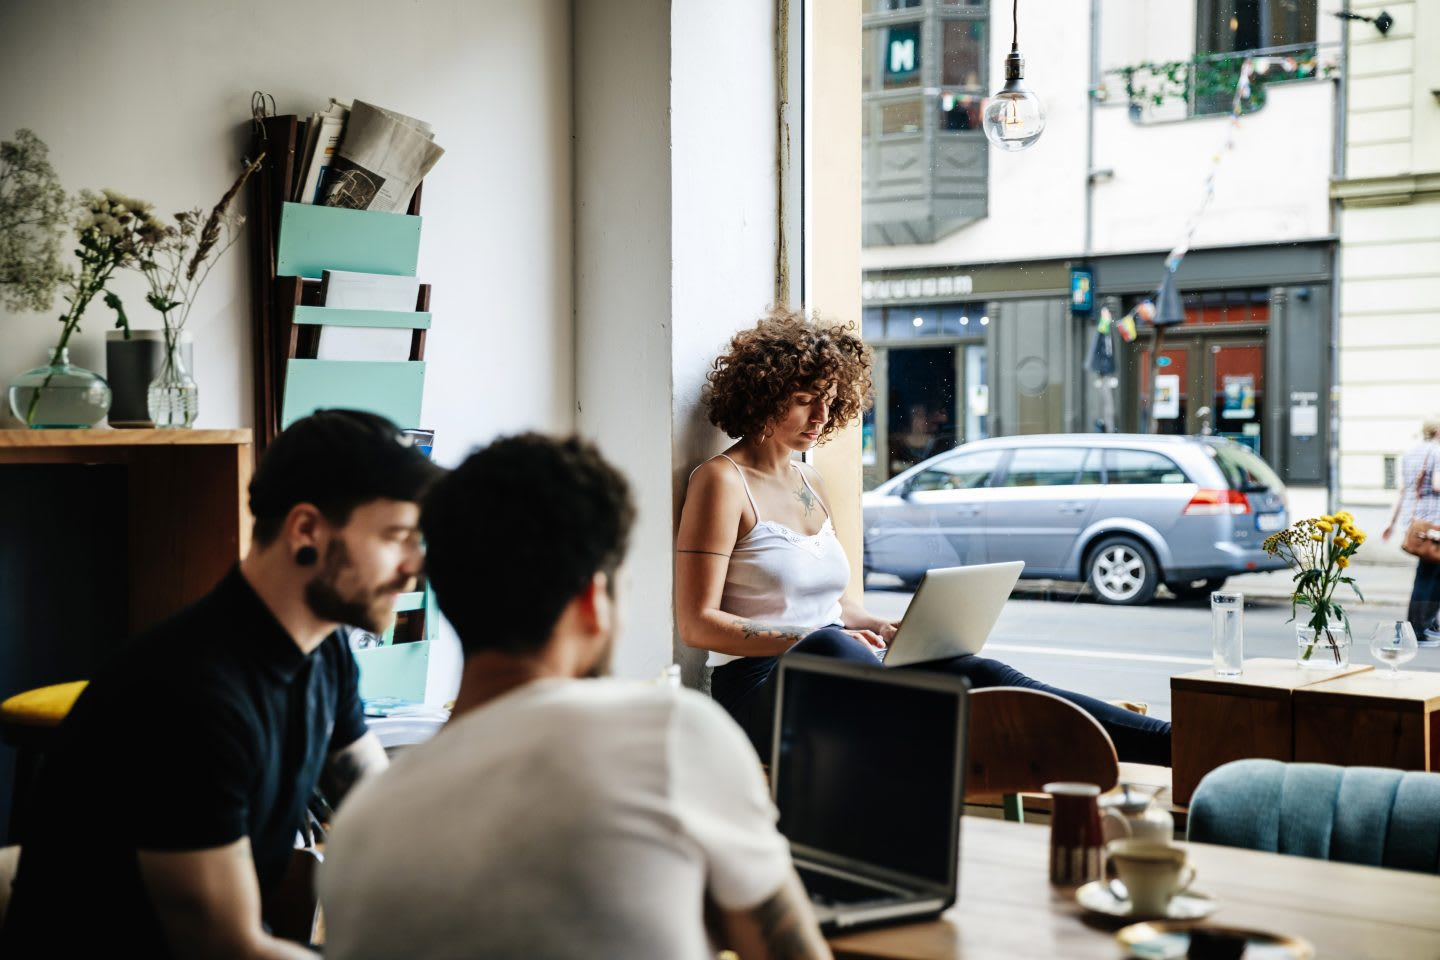 A young woman and two men working separately on their laptops at a cafe. quiet, concentration, work environment, flow state, GamePlan A